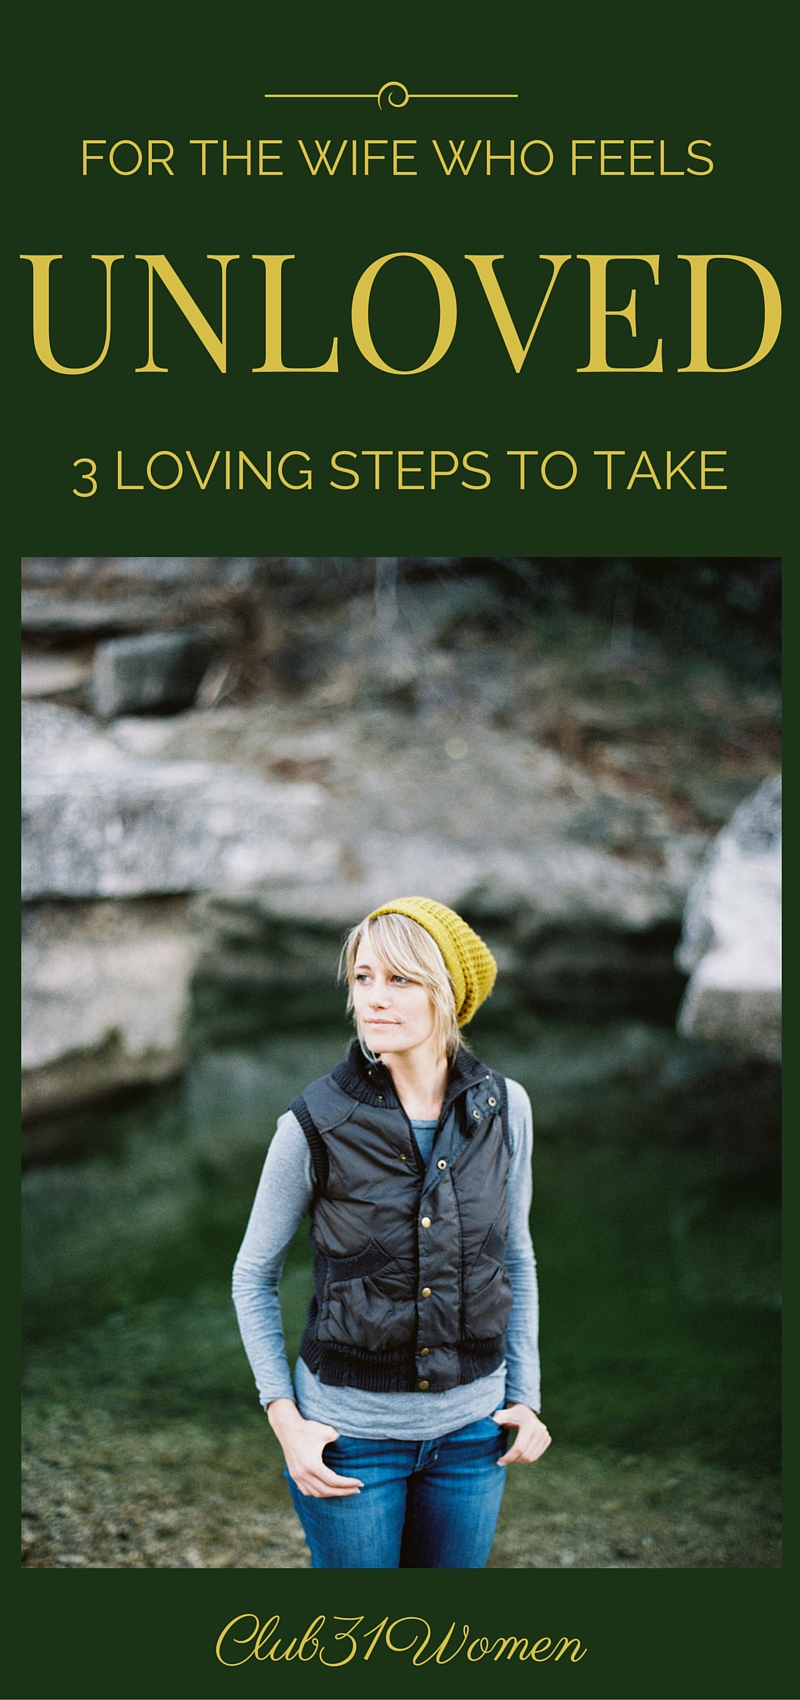 For the Wife Who Feels Unloved: 3 Loving Steps to Take